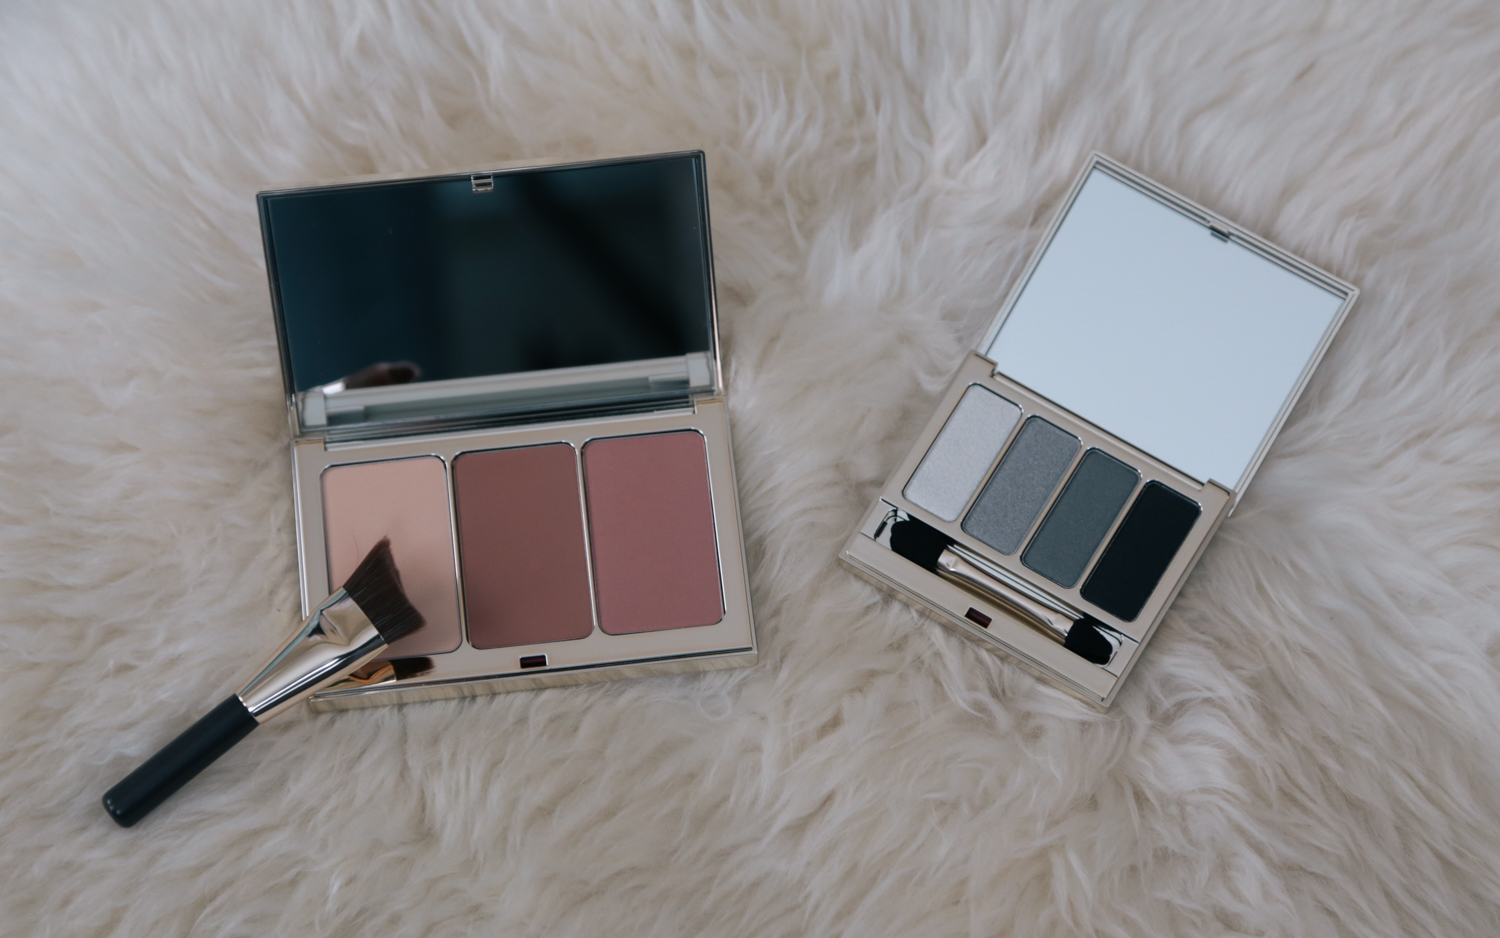 clarins spring 2017 products look (1 of 5)